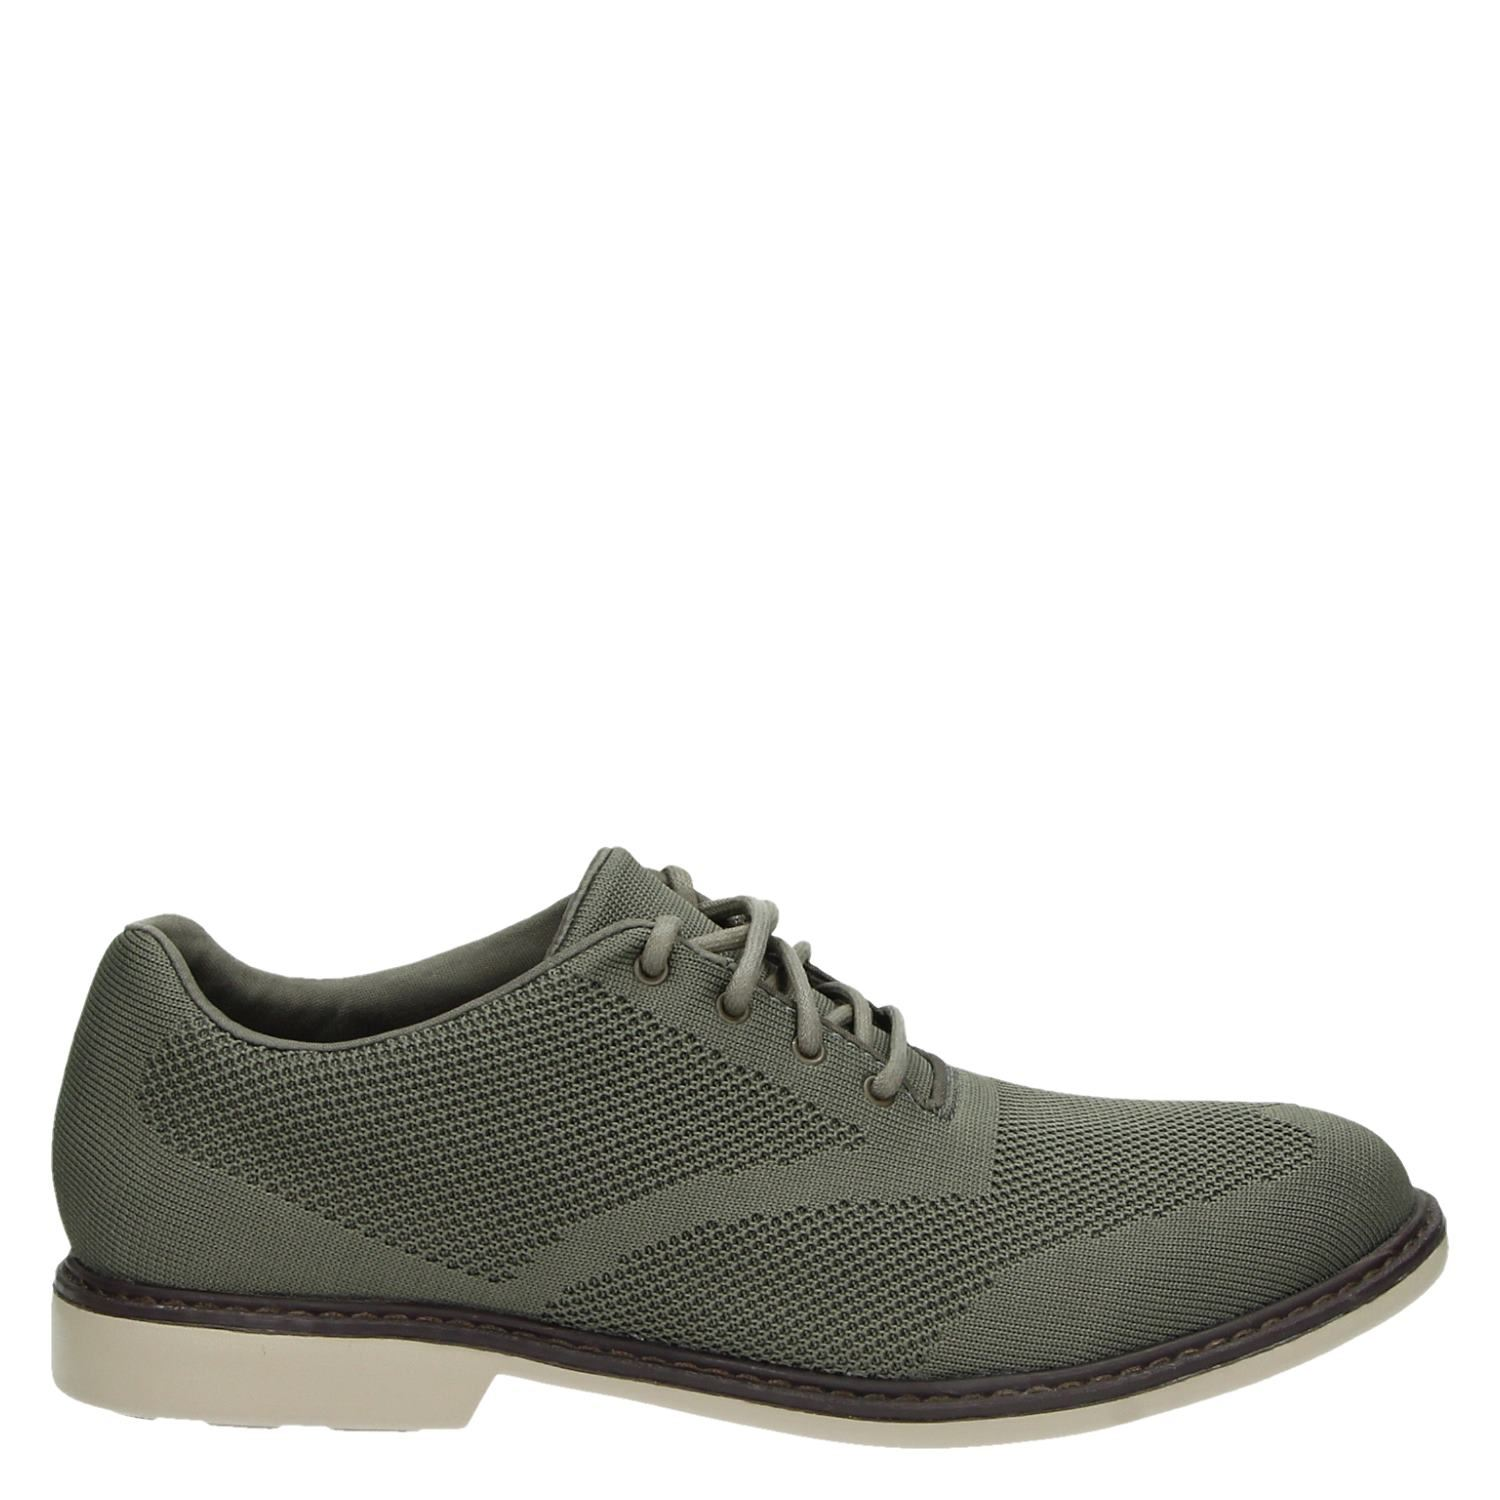 Skechers Dentelle Chaussures Taupe dNIGcwdn